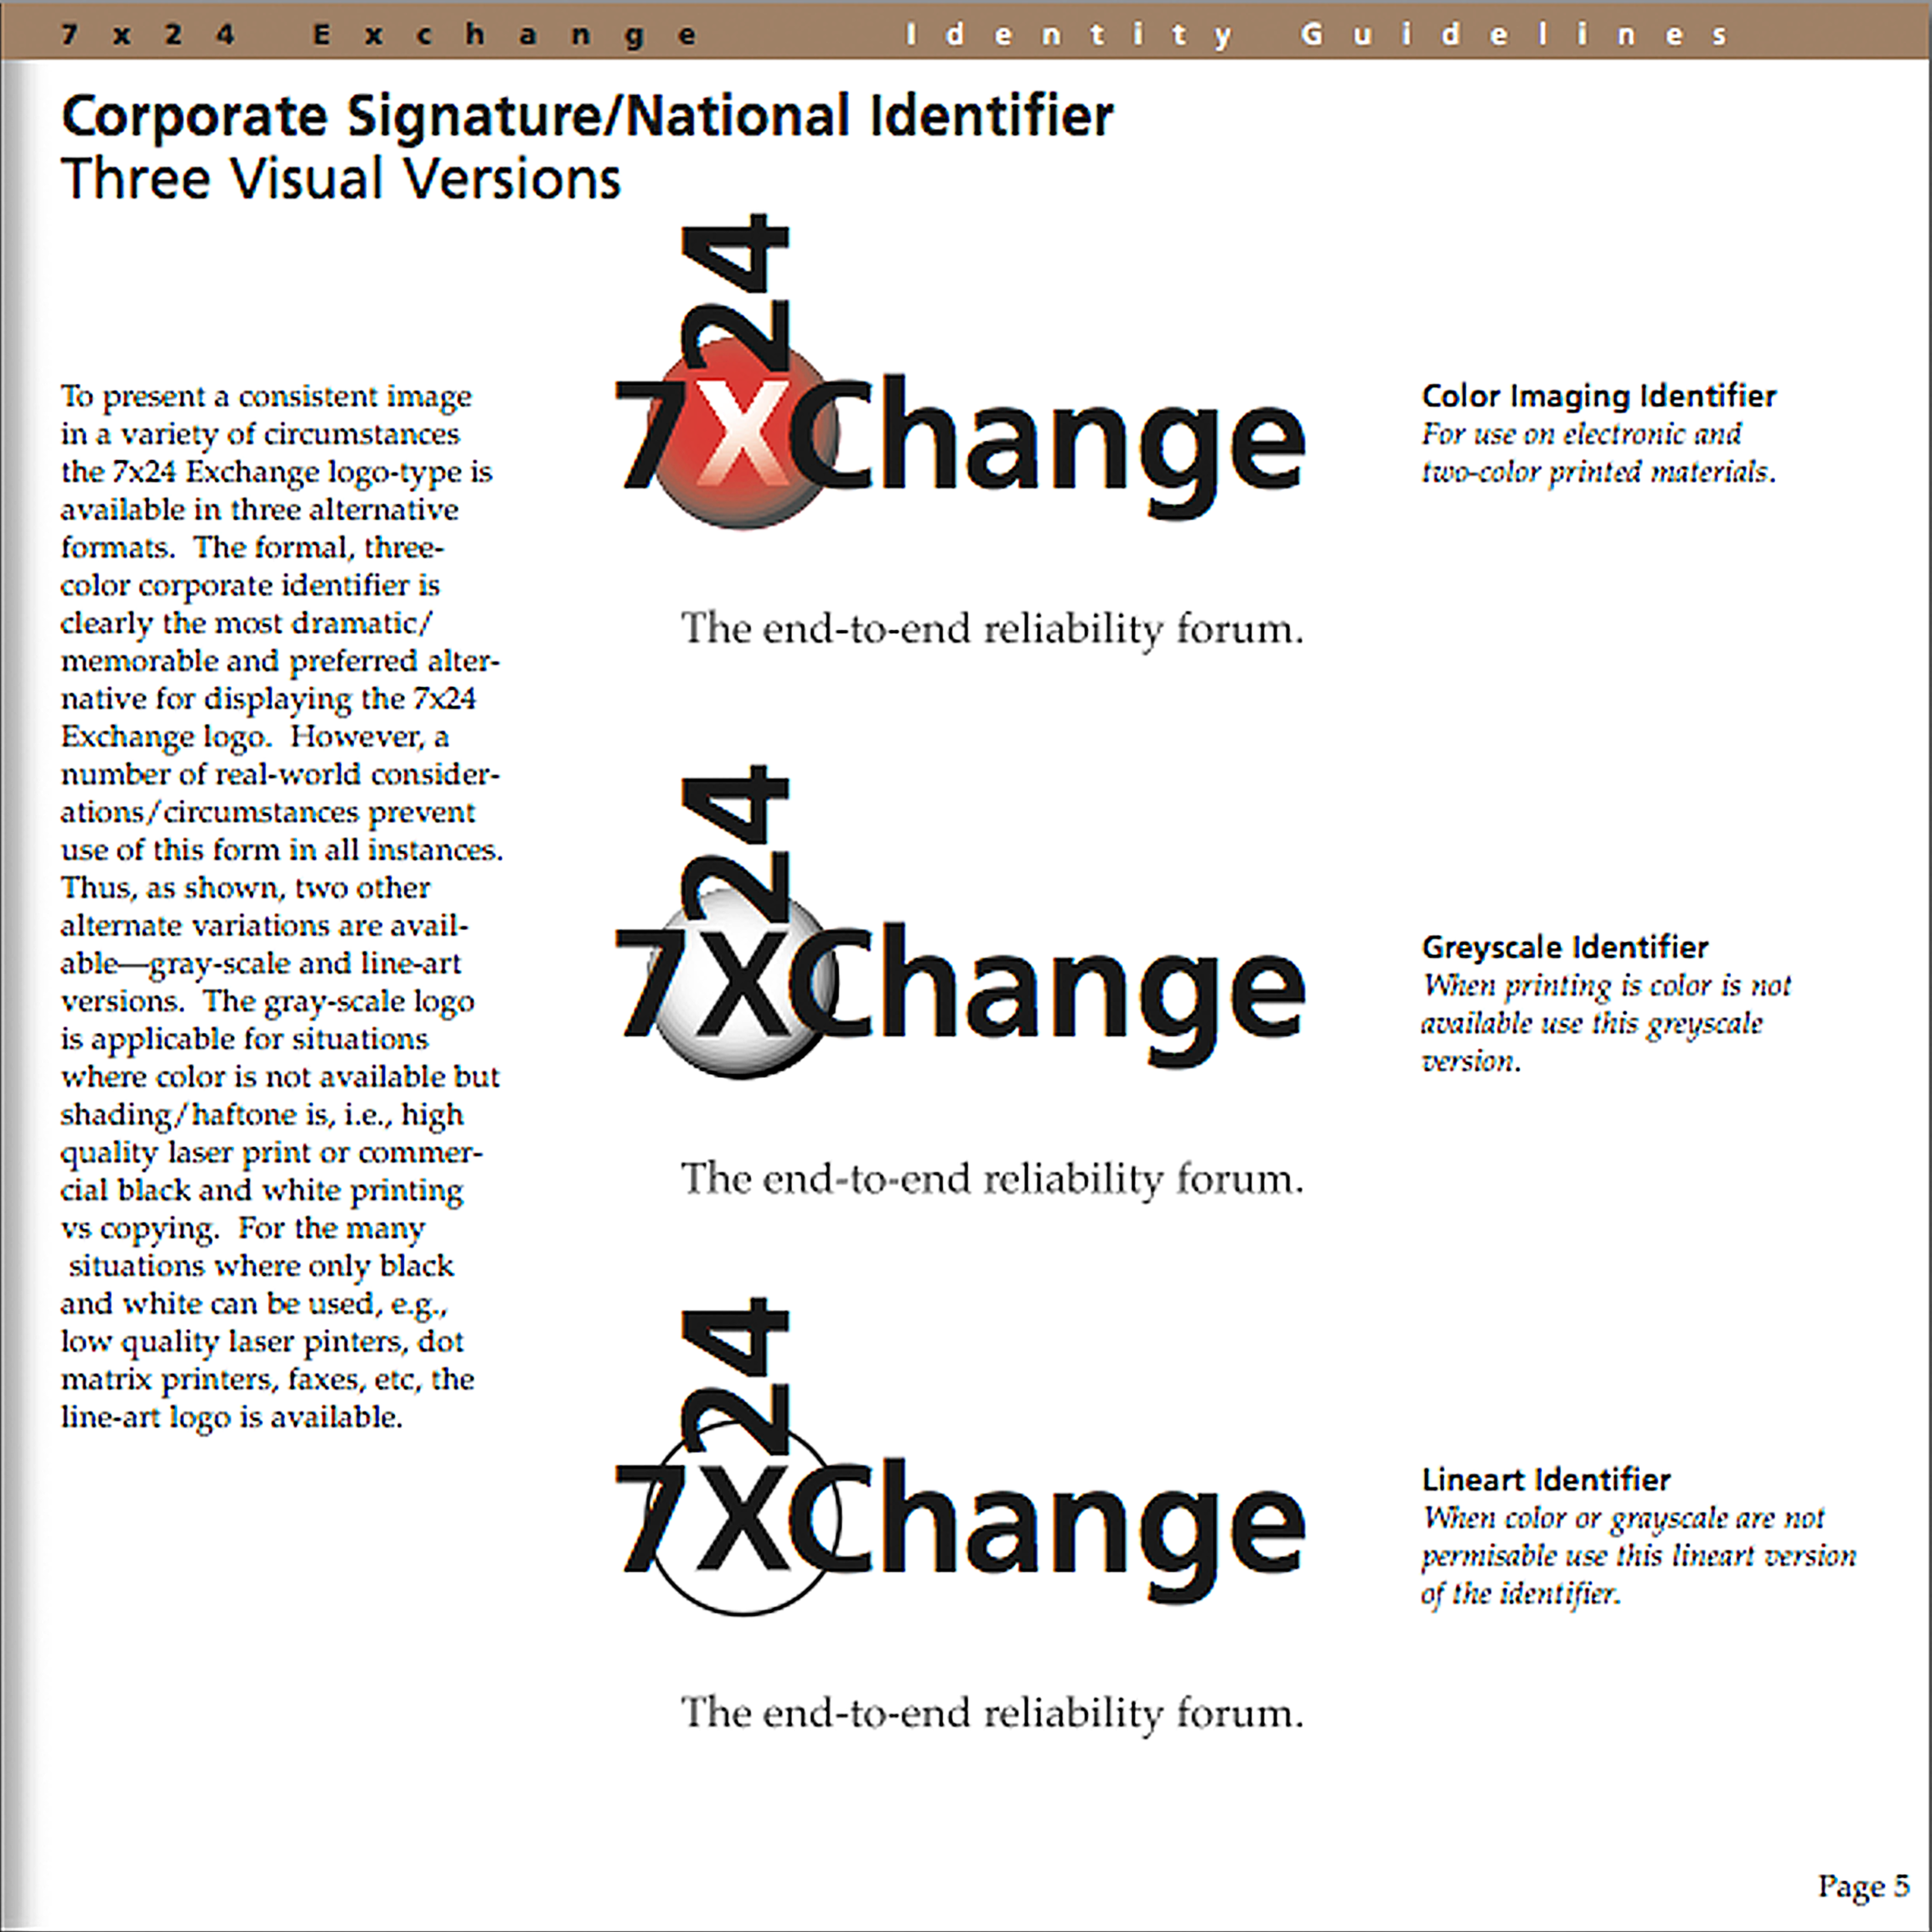 7x24 Exchange   Originally named the Uninterruptible Uptime Users Group (UUUG), an association known to few Facilities Managers. The new name and identity broadened the membership of the organization.